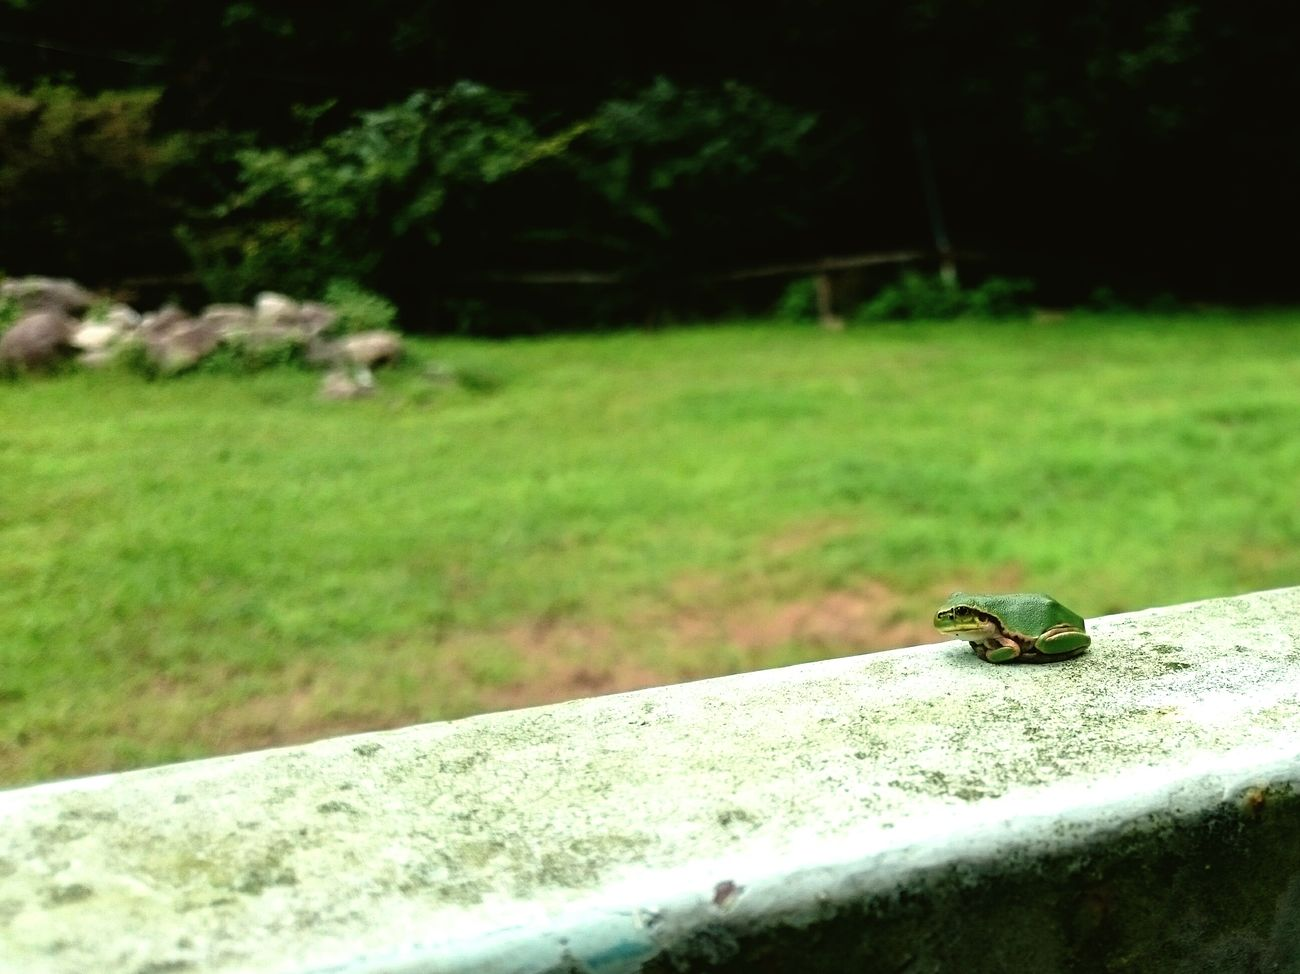 Taking Photos Relaxing Enjoying Life Japan Summer2015 Halu's Photo Frog 蛙 雨蛙